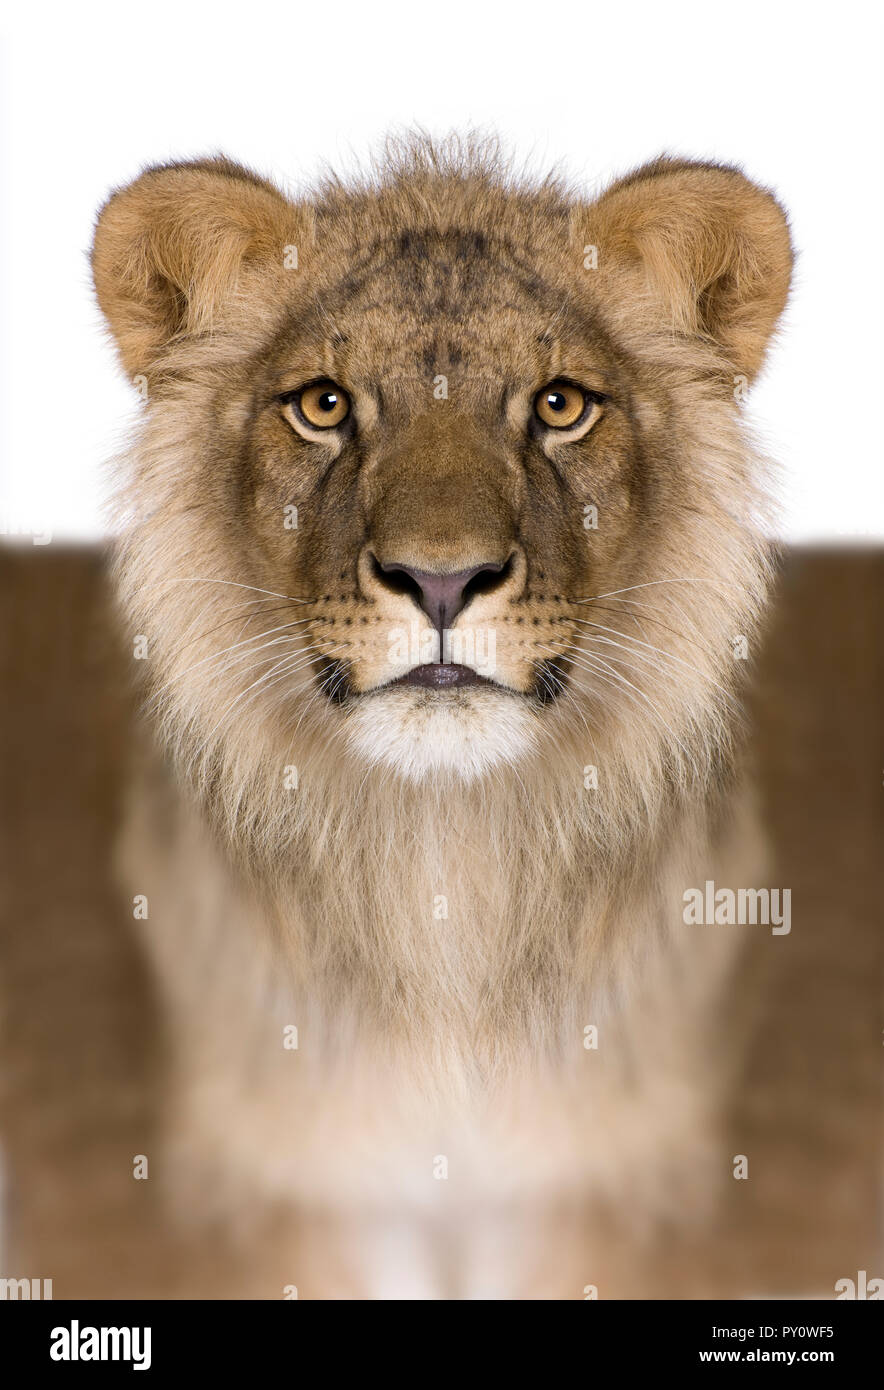 Digitally enhanced Lion, Panthera leo, 9 months old, in front of a white background, studio shot - Stock Image